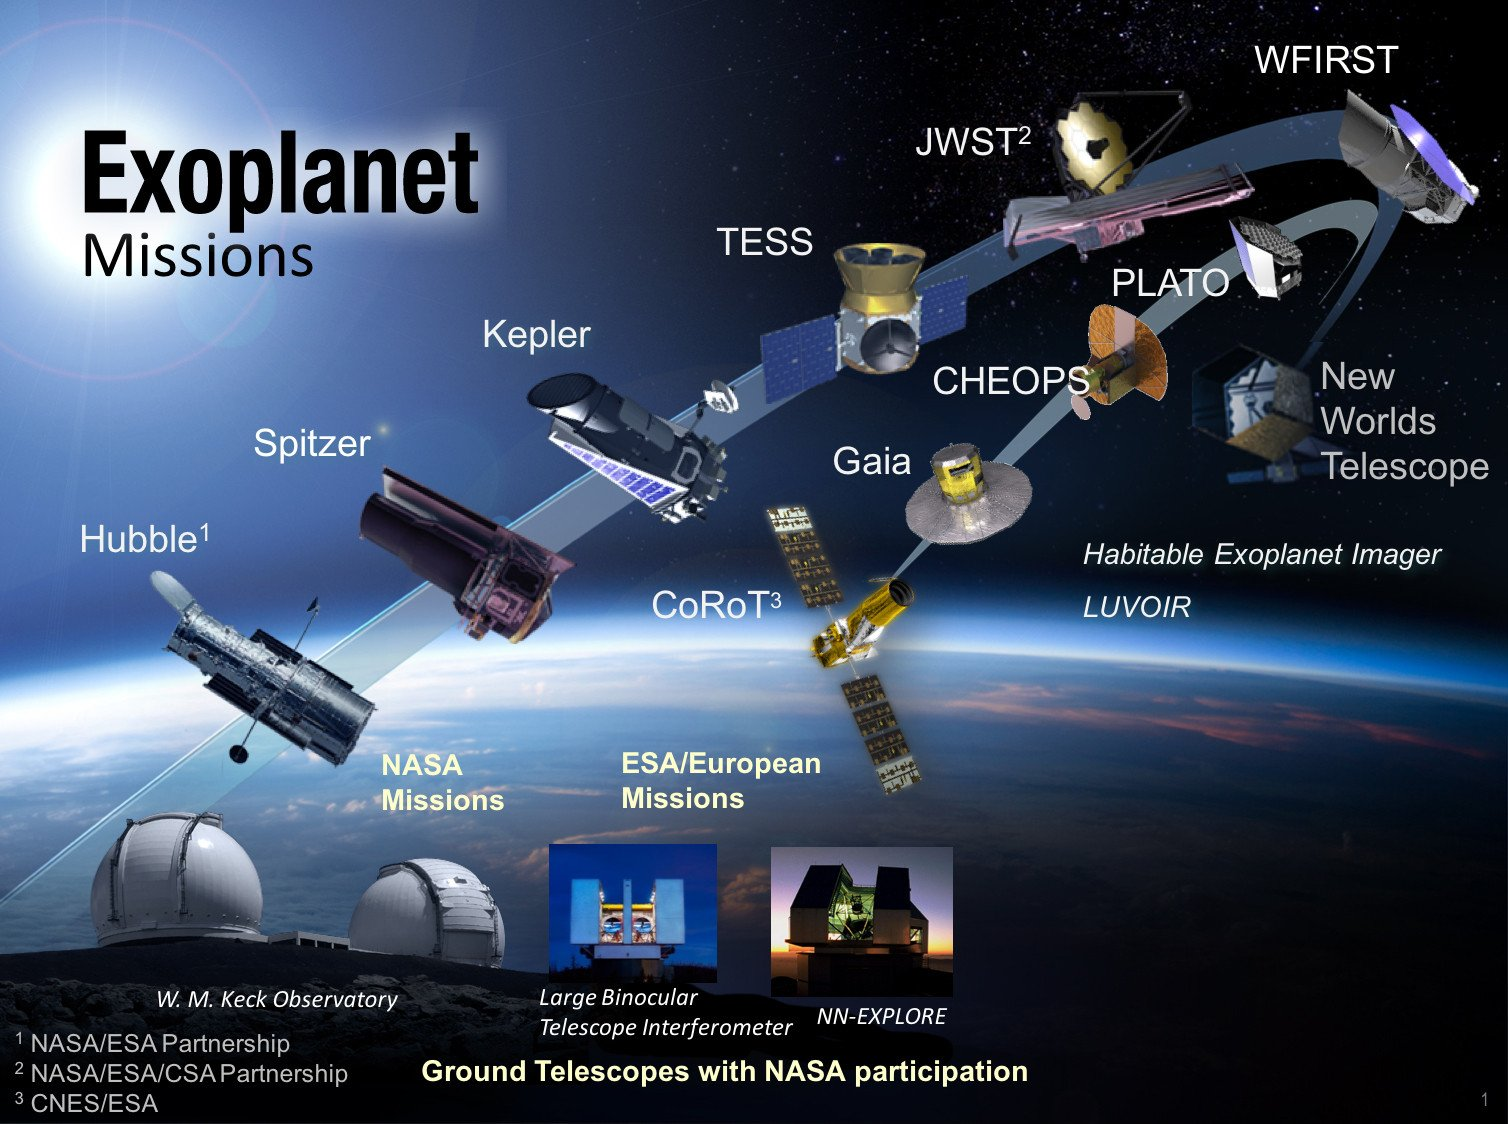 Exoplanet missions